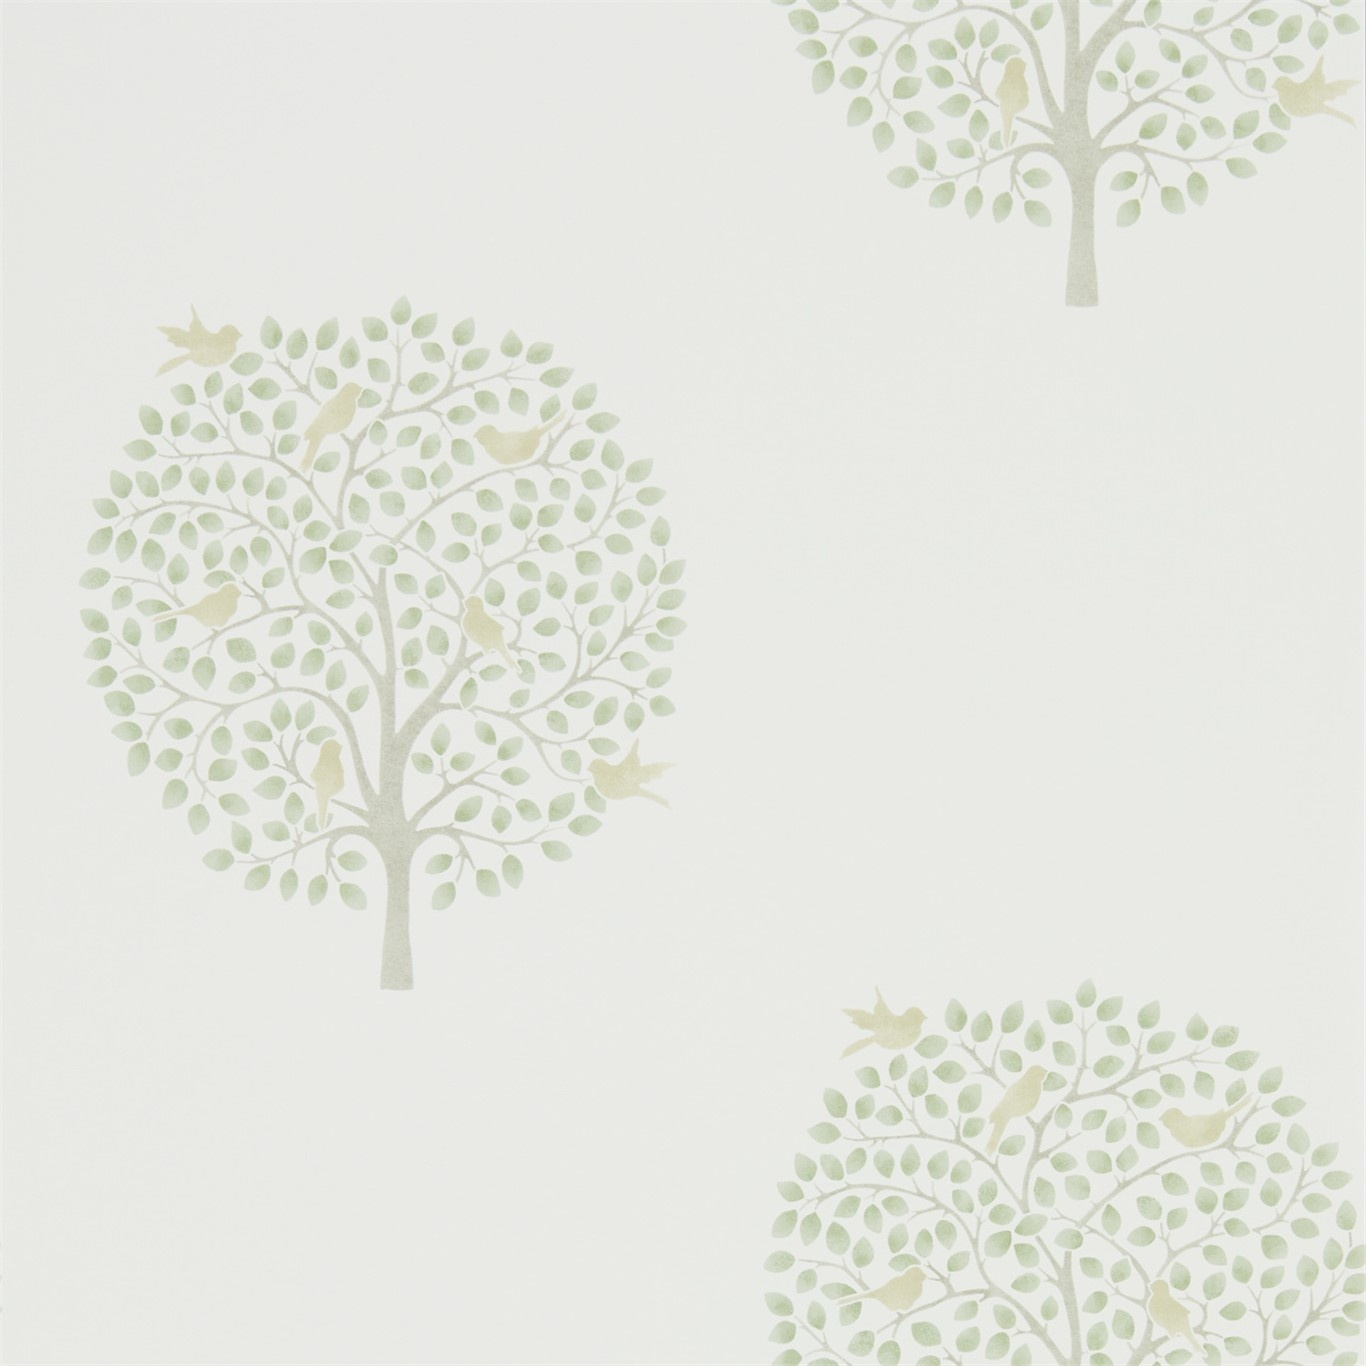 Image of Sanderson Home Bay Tree Celadon/Flint Wallpaper 216359